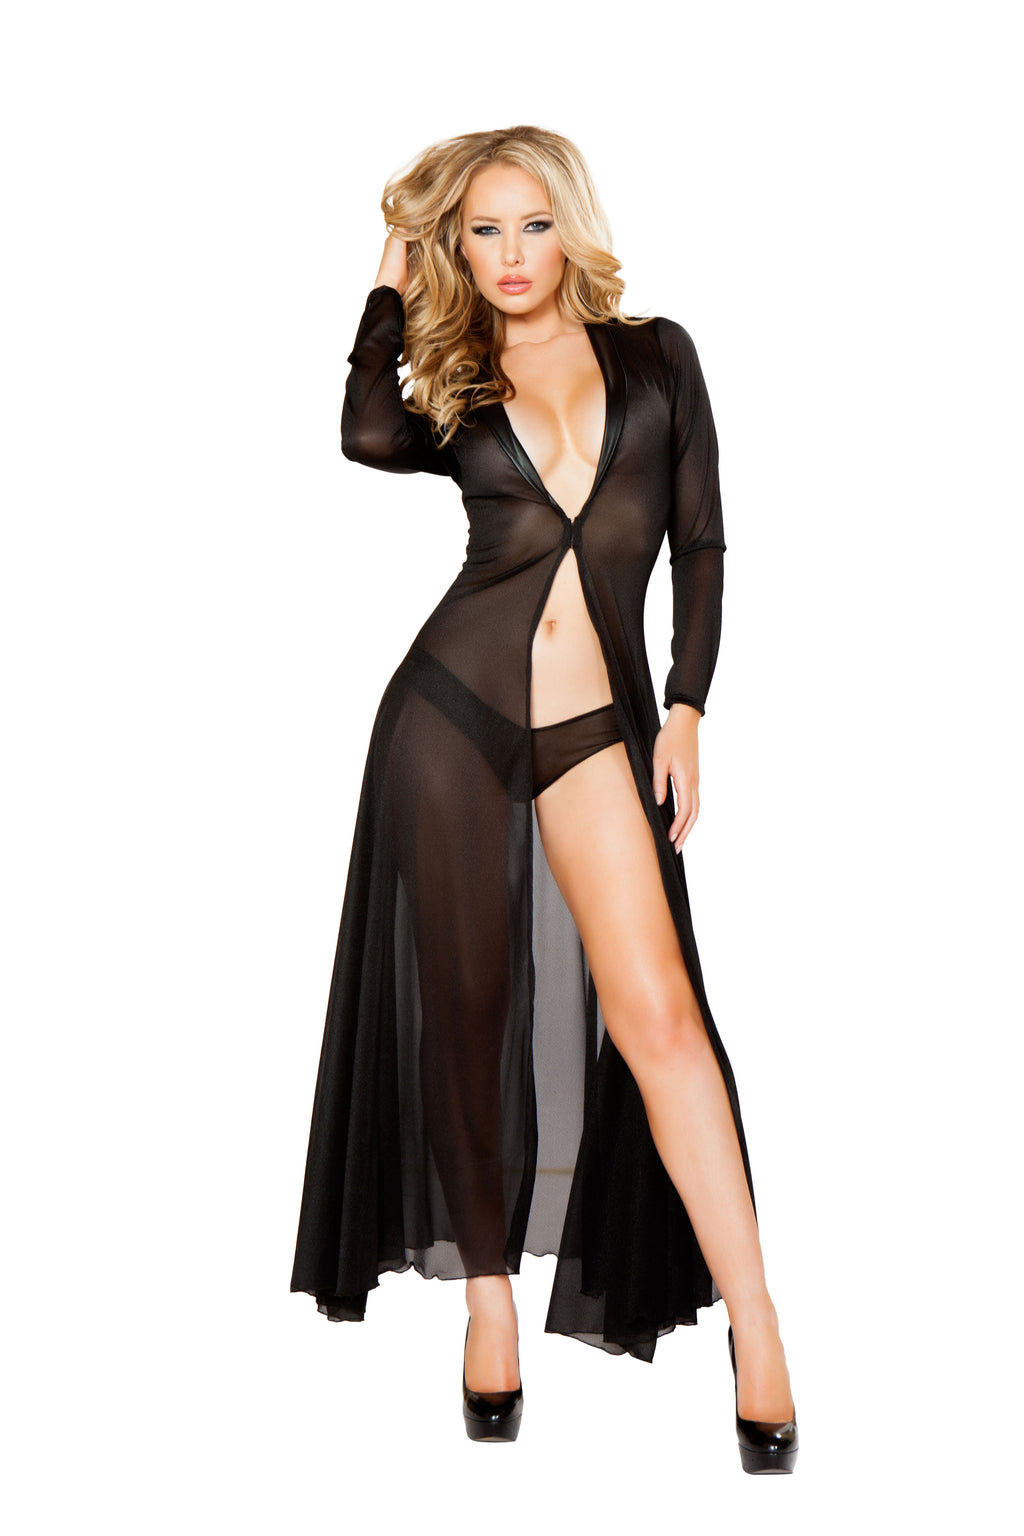 2pc Long Sheer Robe with Hooks & Mesh Shorts - PlaythingsMiami